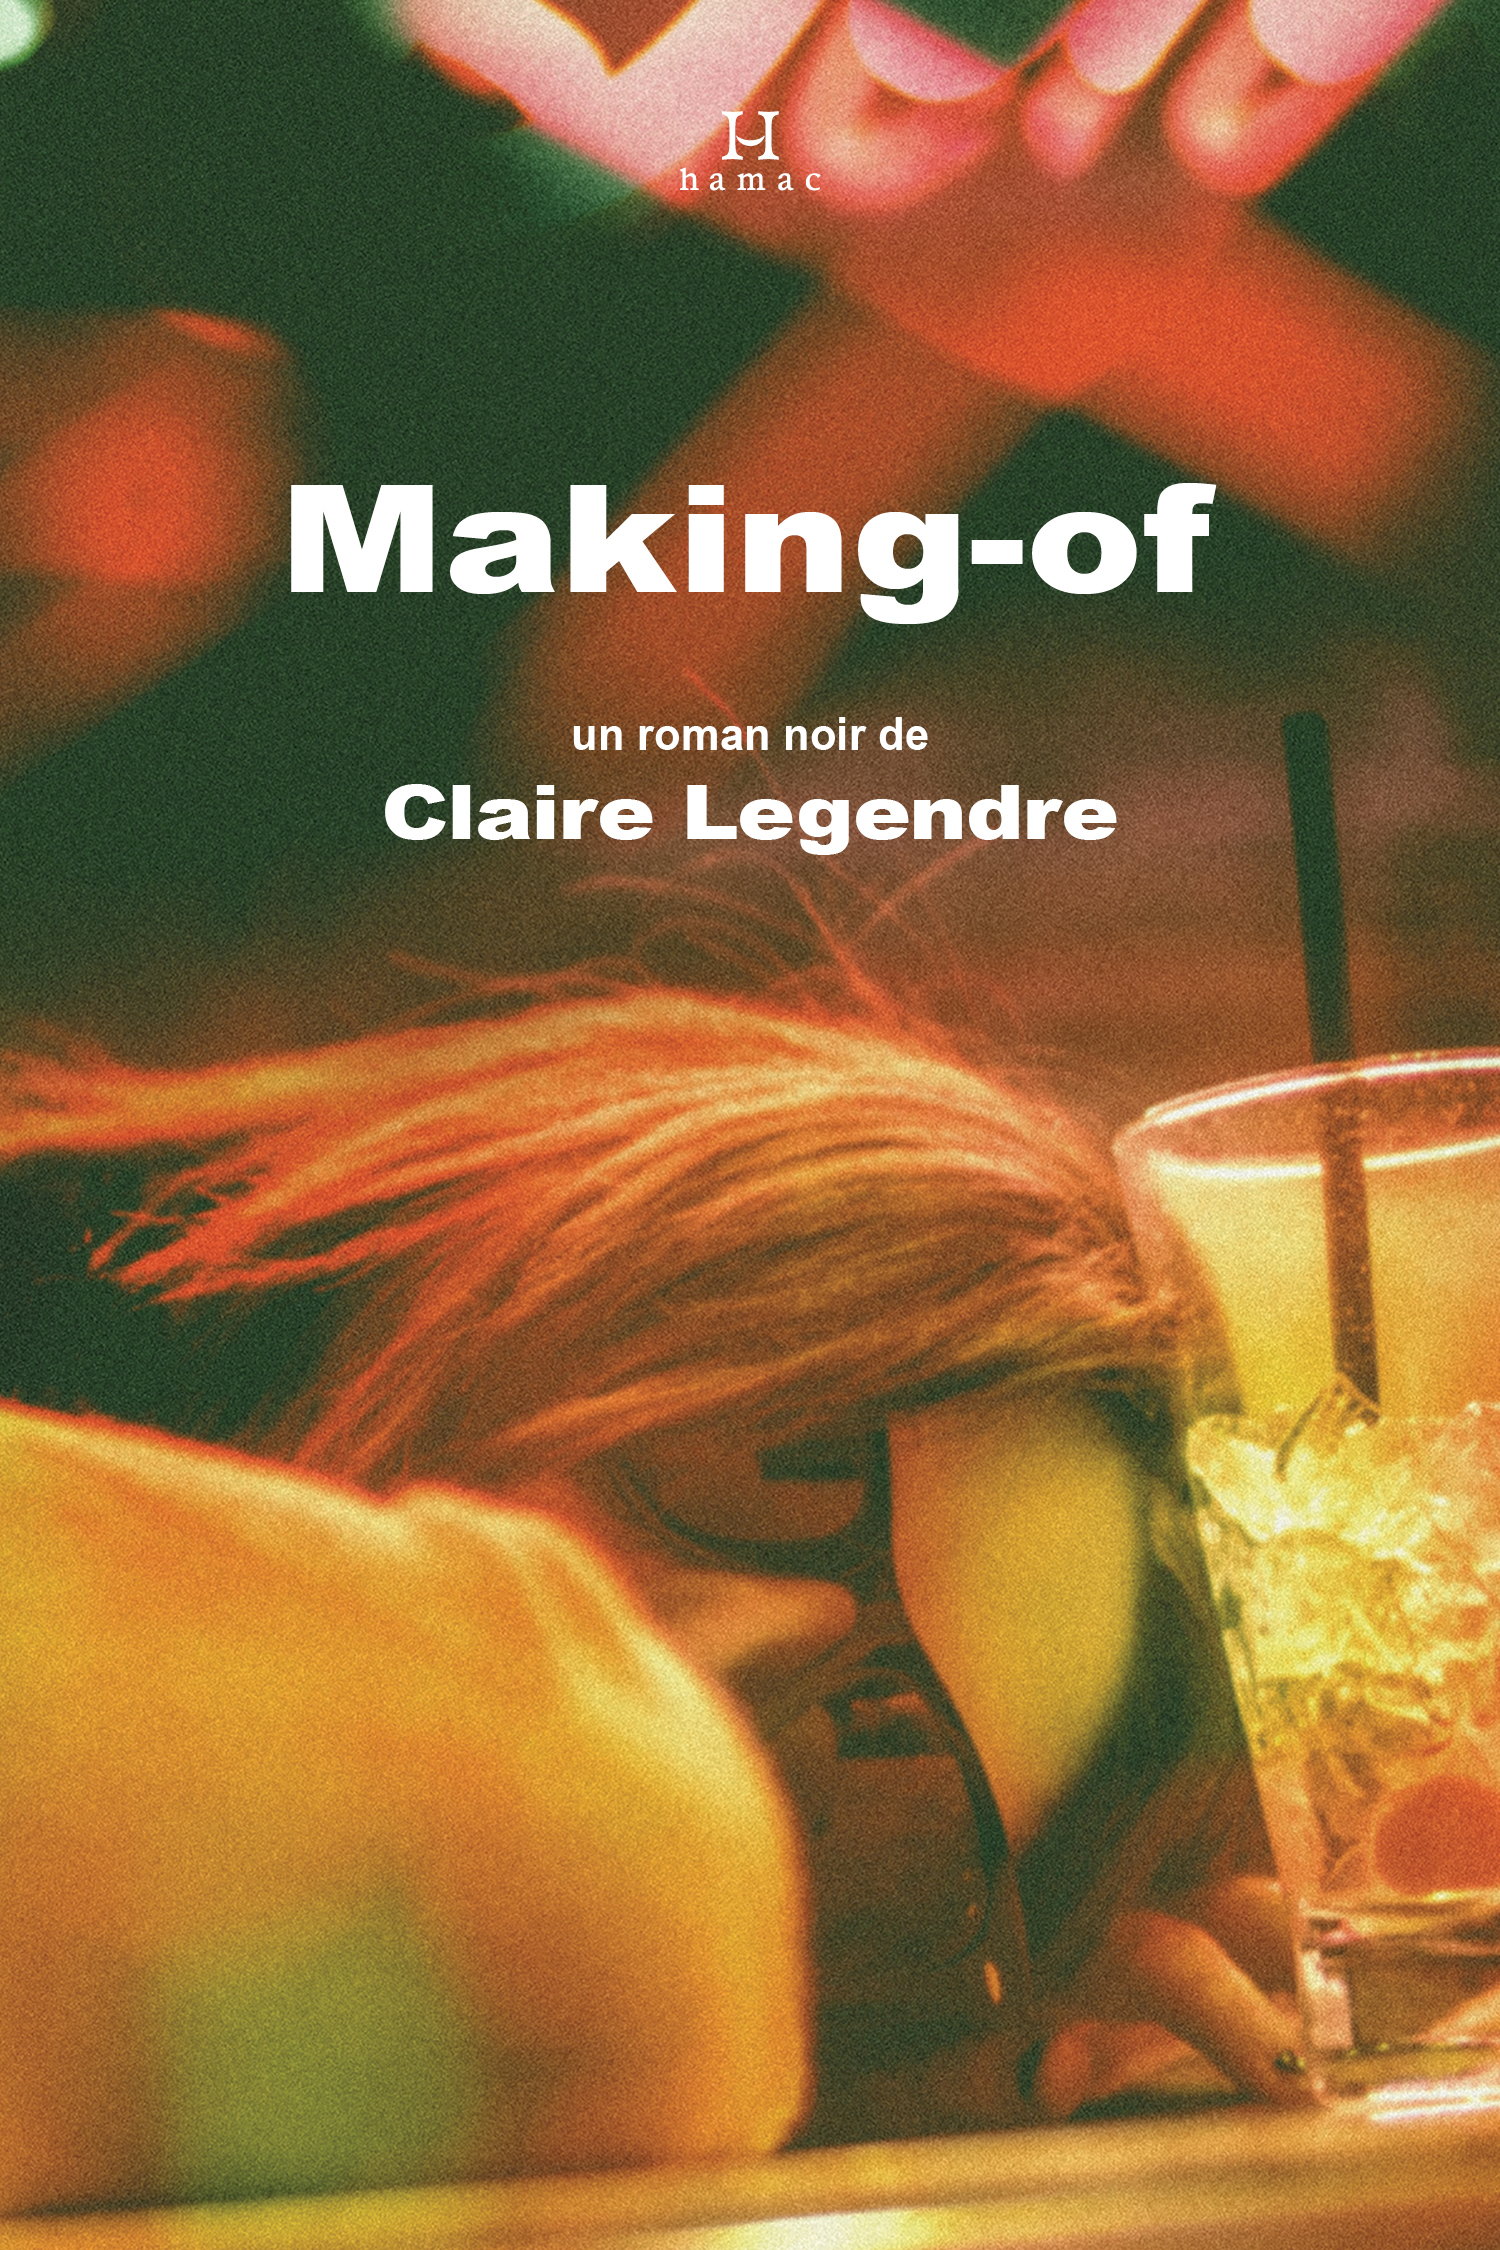 Making-of - Claire Legendre